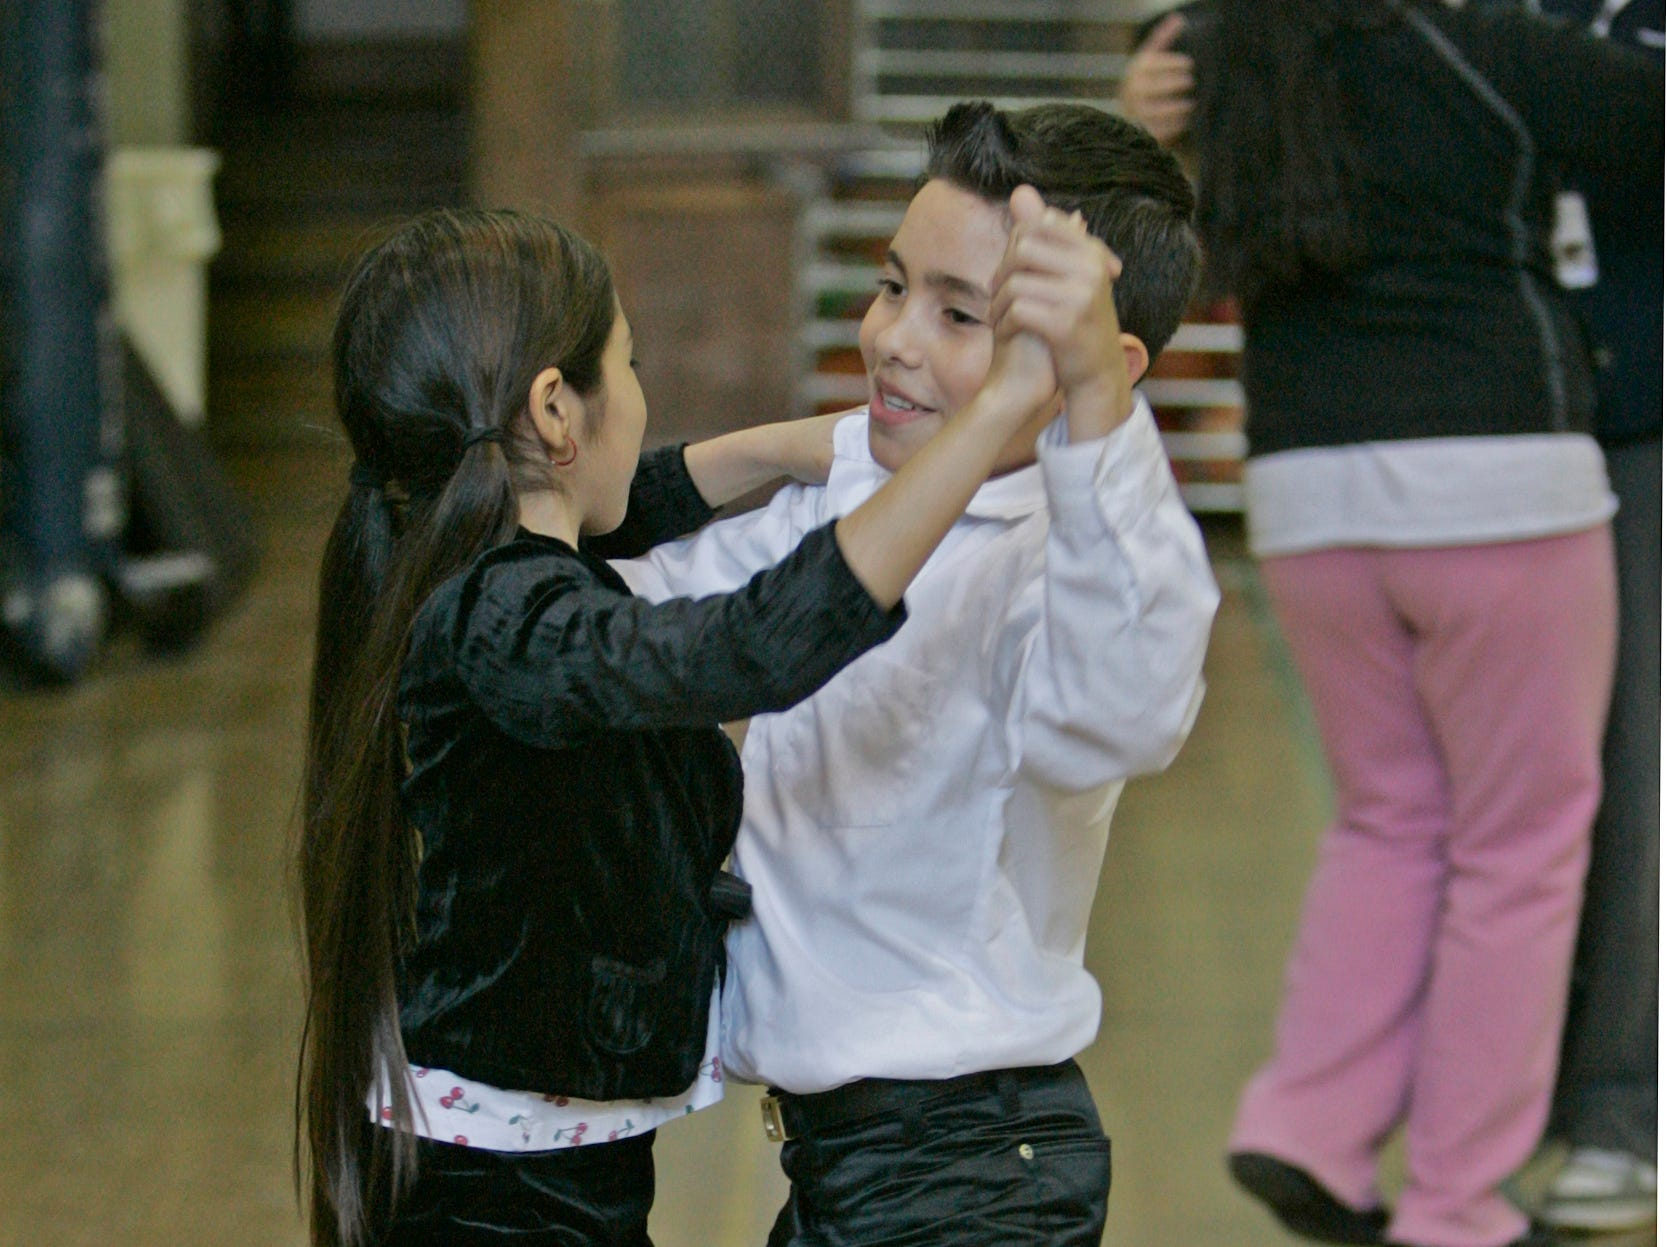 2008: America Espinosa, left, and Daniel Morillo, both 11,  dance the fox trot during the Mad Hot Ballroom and Tap program, sponsored by Danceworks, at Vieau Elementary School,  823 S. 4th Street, Milwaukee.